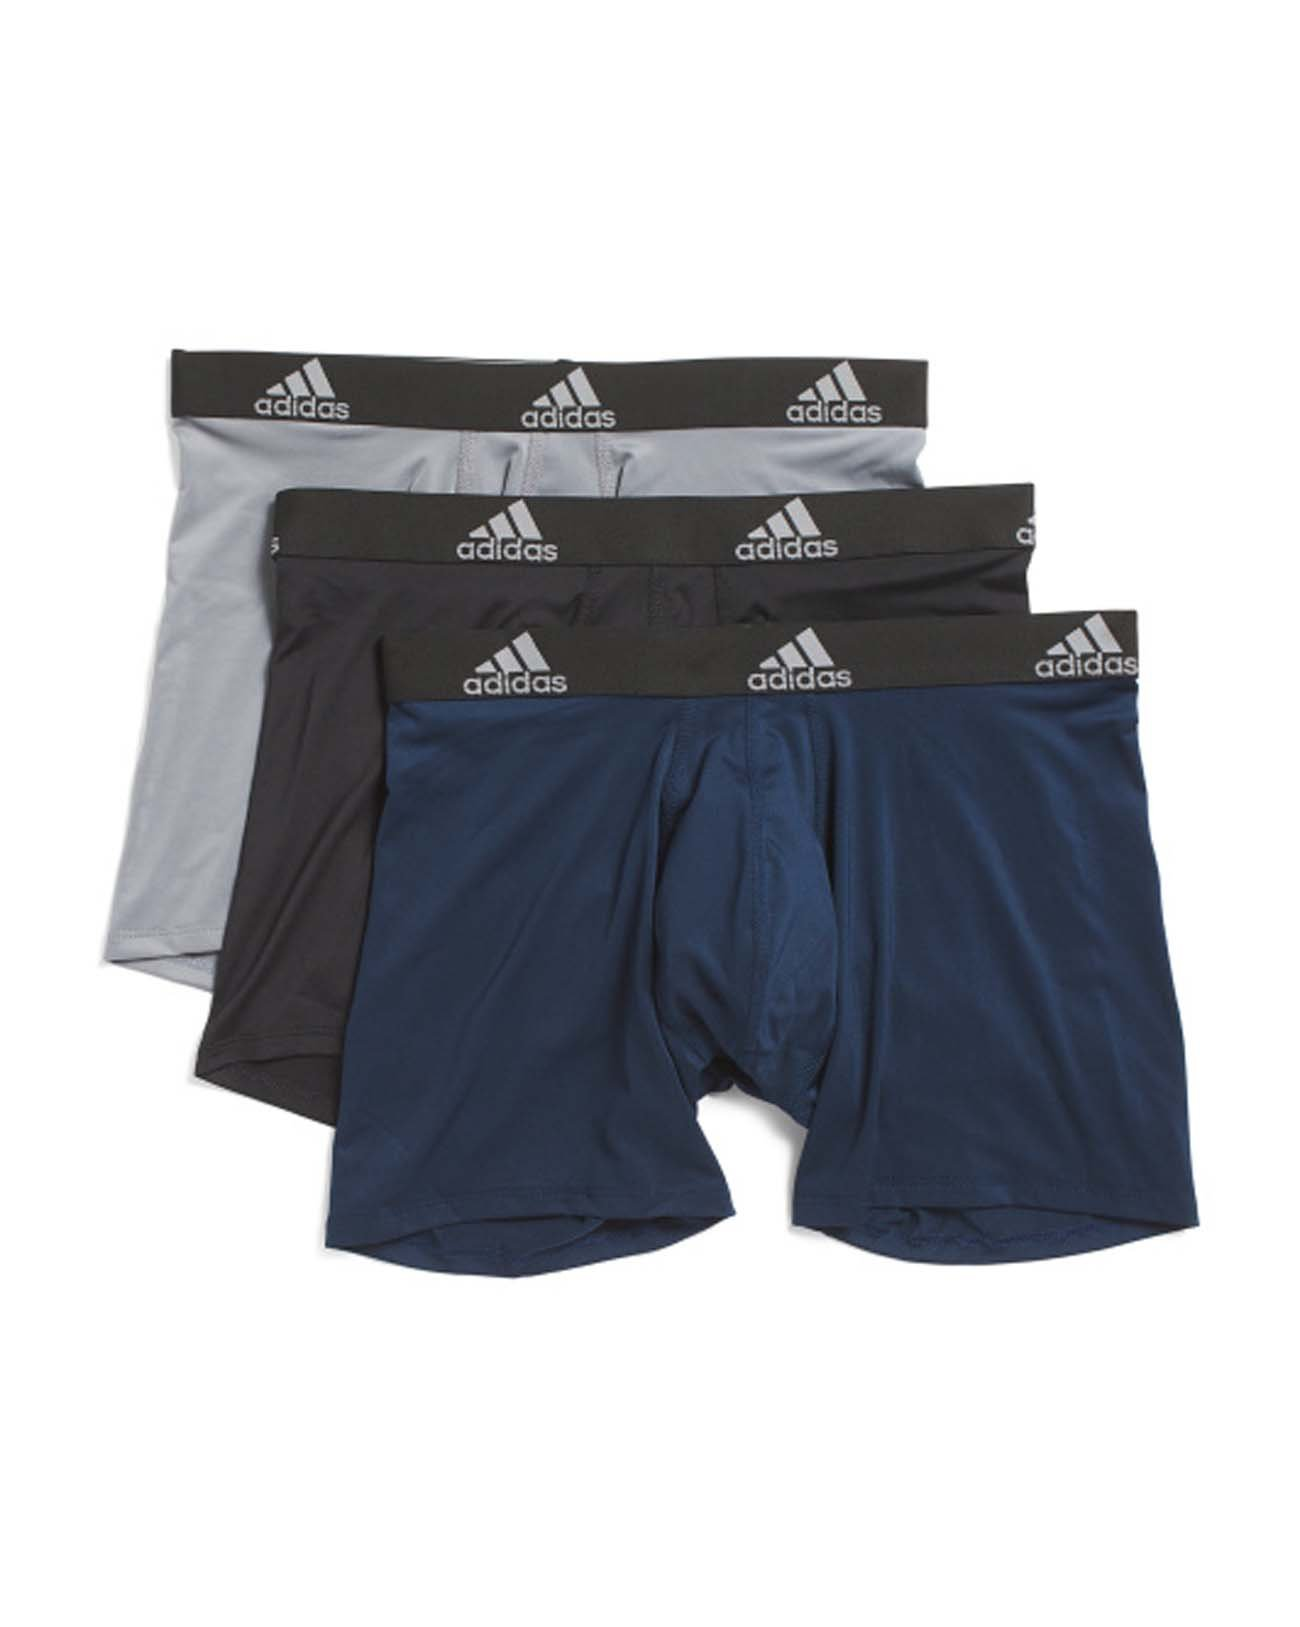 adidas Mens 3 Pack Climalite Performance Boxer Briefs (Large, Black/Grey/Collegiate Navy)